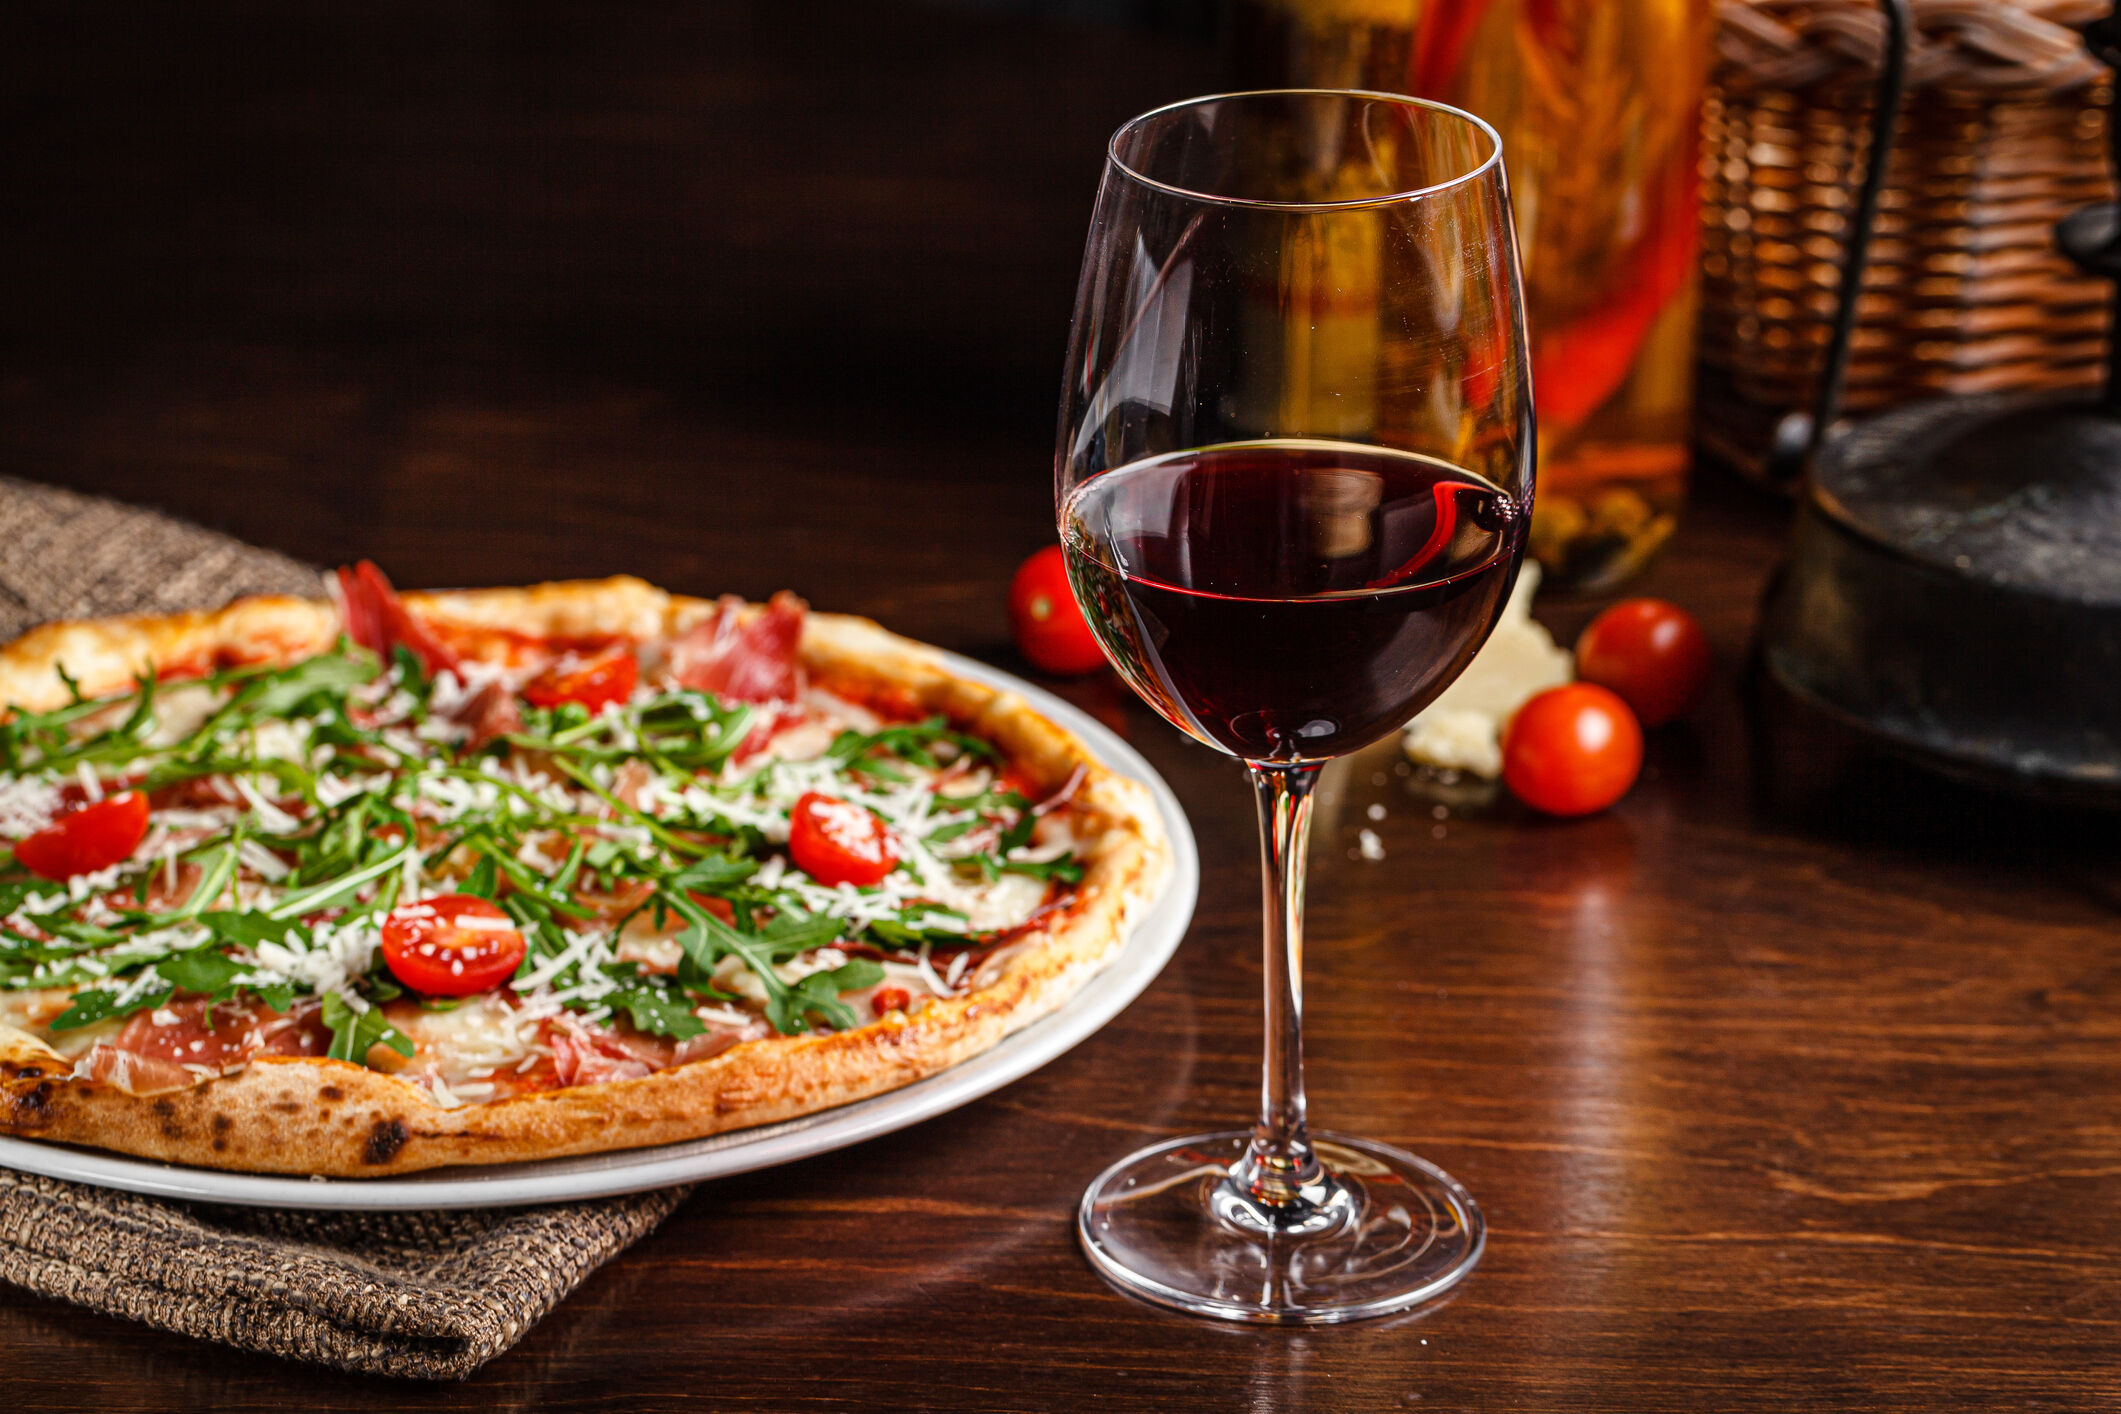 Wine of the Week: Annual pizza wine review